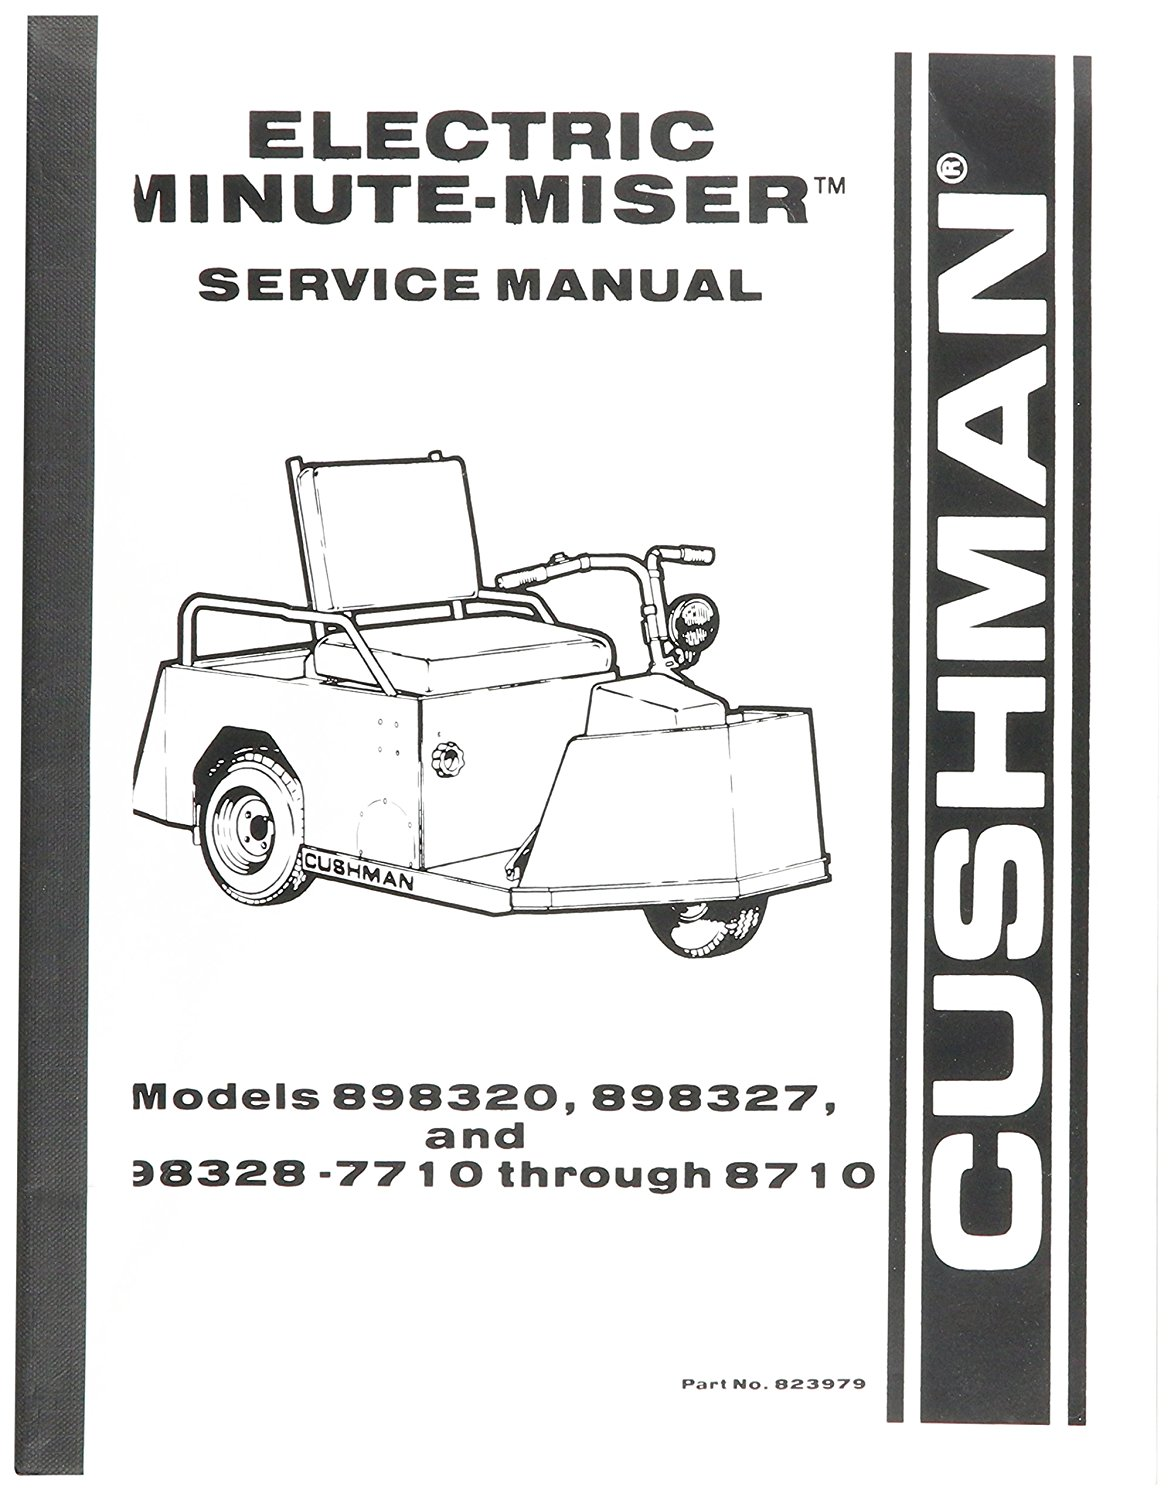 Get Quotations · EZGO 823979 1977-1987 Service Manual for Cushman Electric  Powered Minute Miser